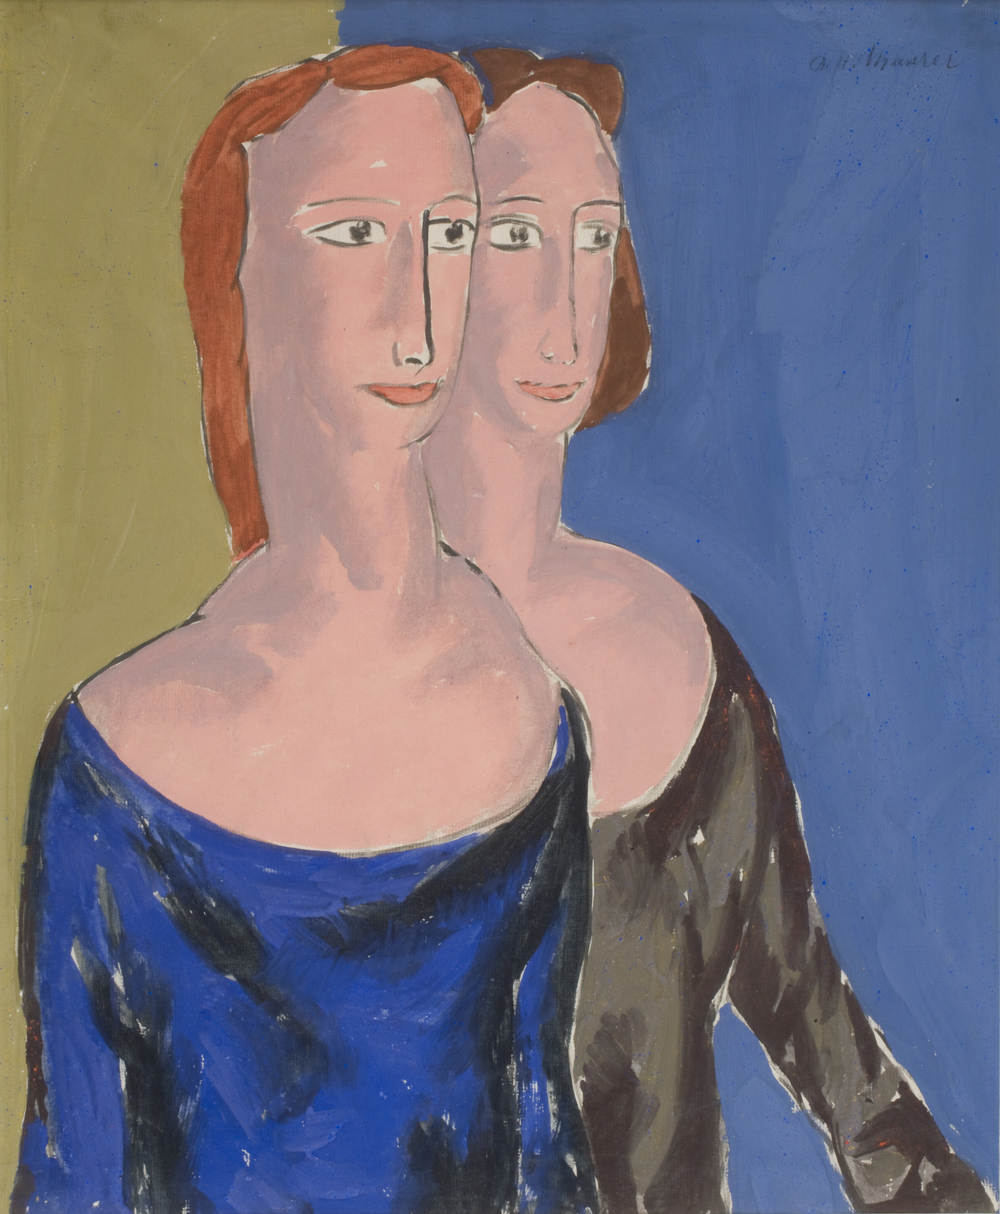 Painting of two women with red hair overlapping, one wearing a blue dress and one wearing a black dress. Green background on left, blue on left.